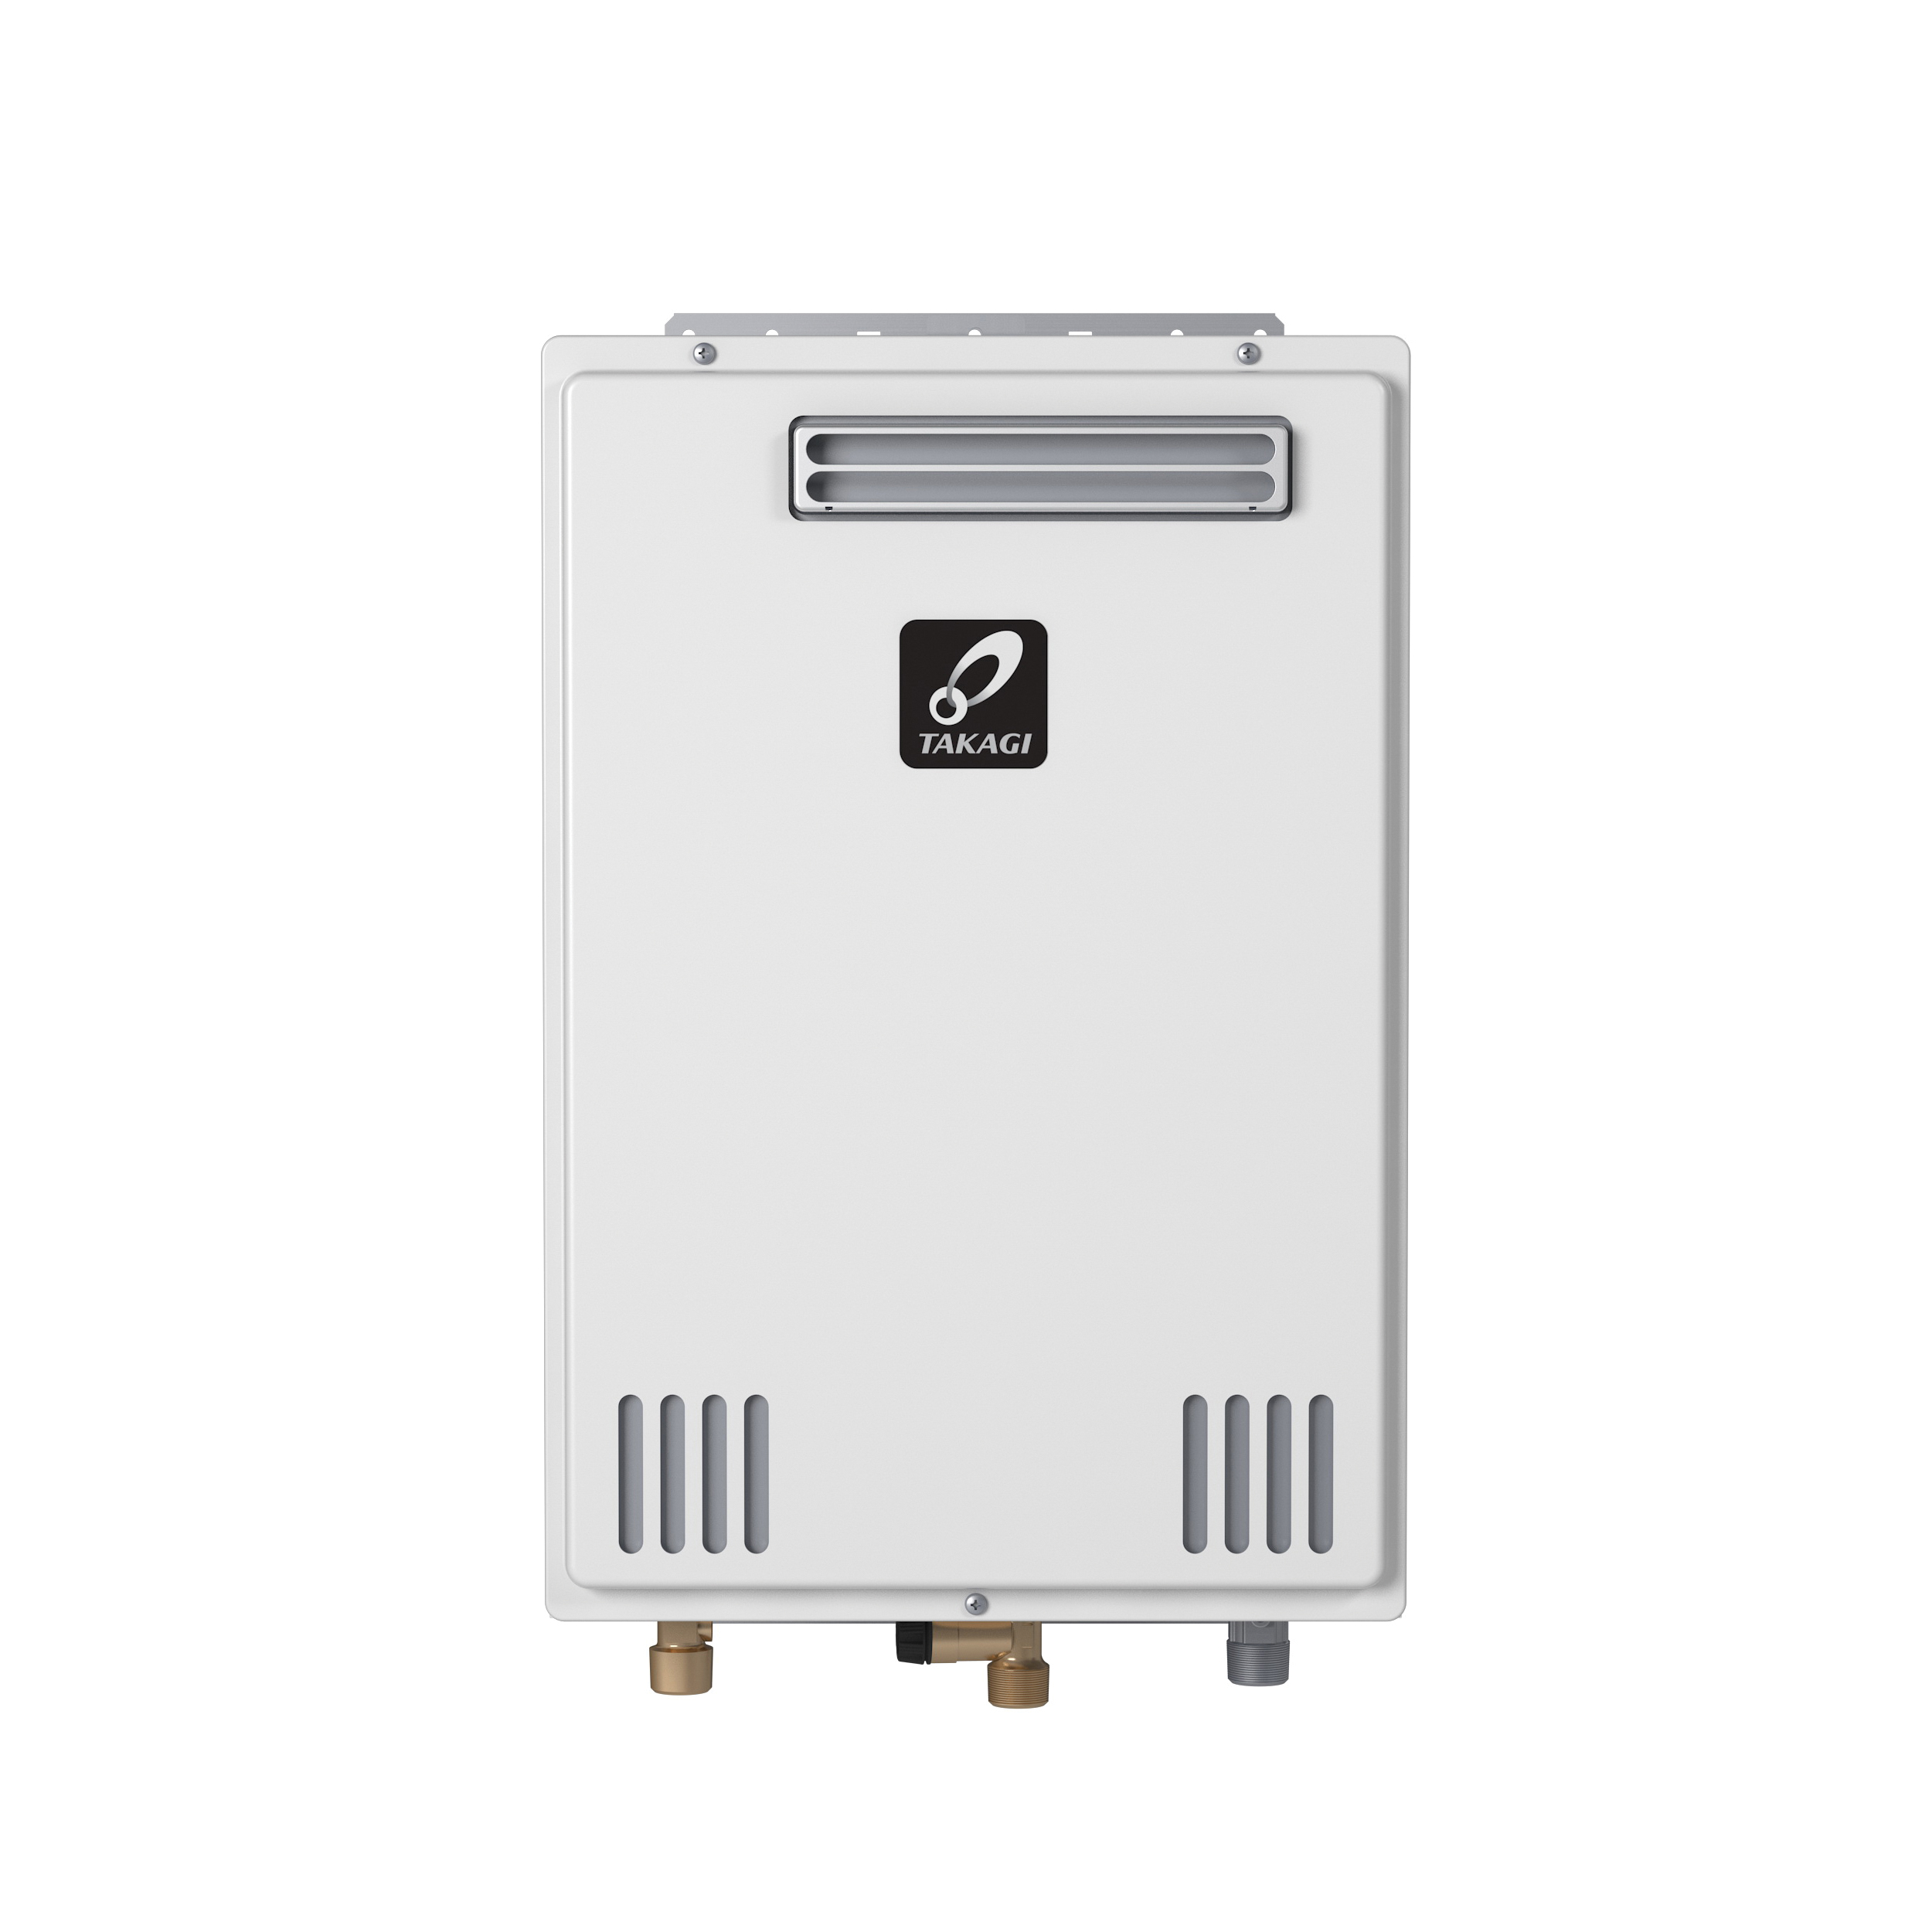 Takagi TD2UOSNNG T-D2U Tankless Water Heater, Natural Gas, 199000 Btu/hr Heating, Outdoor, Non Condensing, 10 gpm, 4 in, 0.82 Energy Factor, Commercial/Residential/Dual: Commercial, Ultra Low NOx: Yes